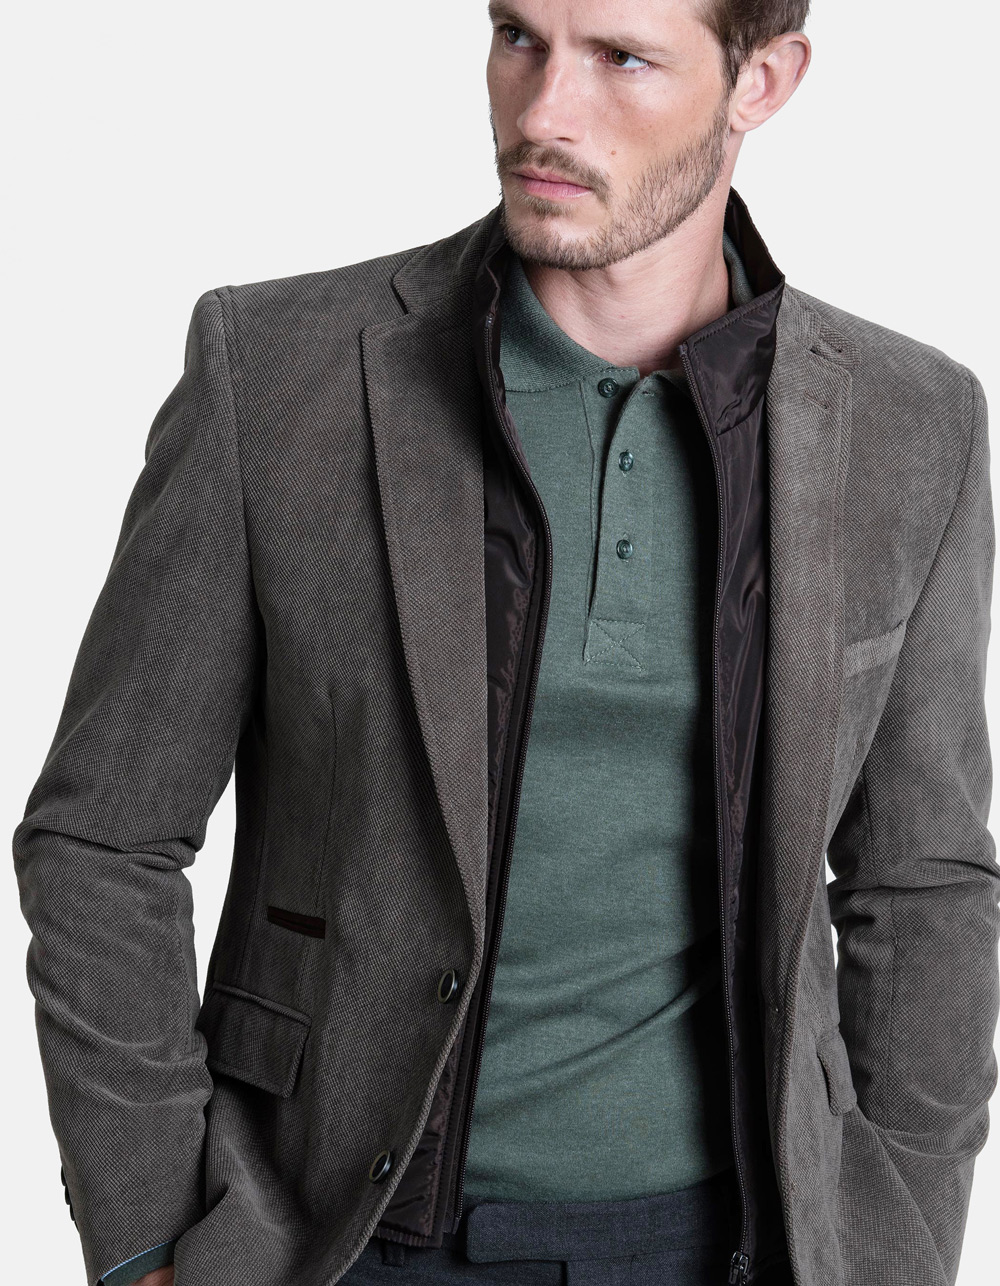 Brown sport front blazer